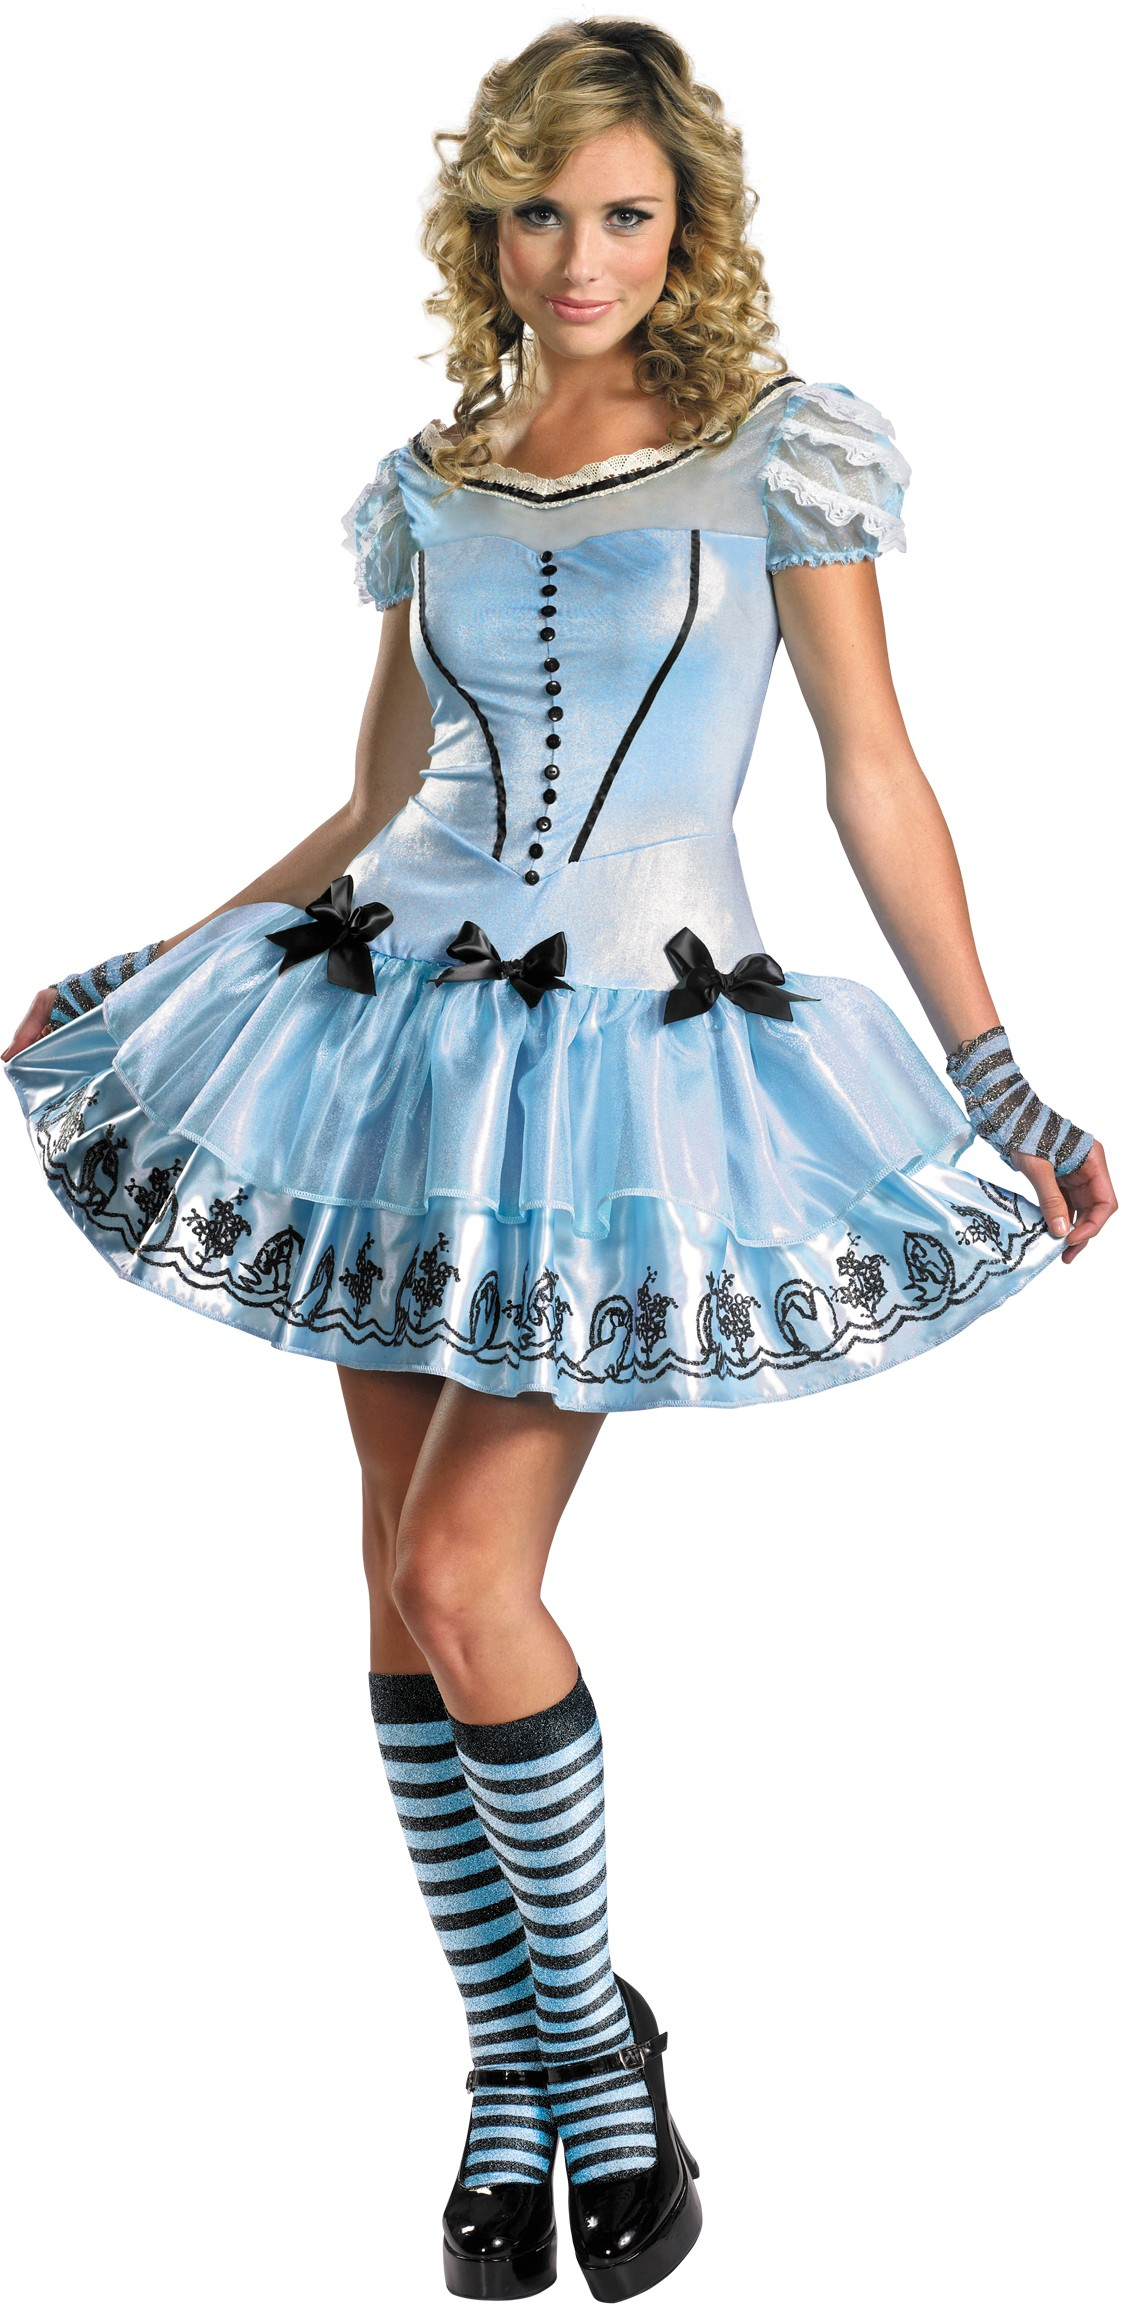 Alice In Wonderland Movie - Sassy Blue Dress Alice Adult Womenu0026#39;s Costume | Costumes.com.au